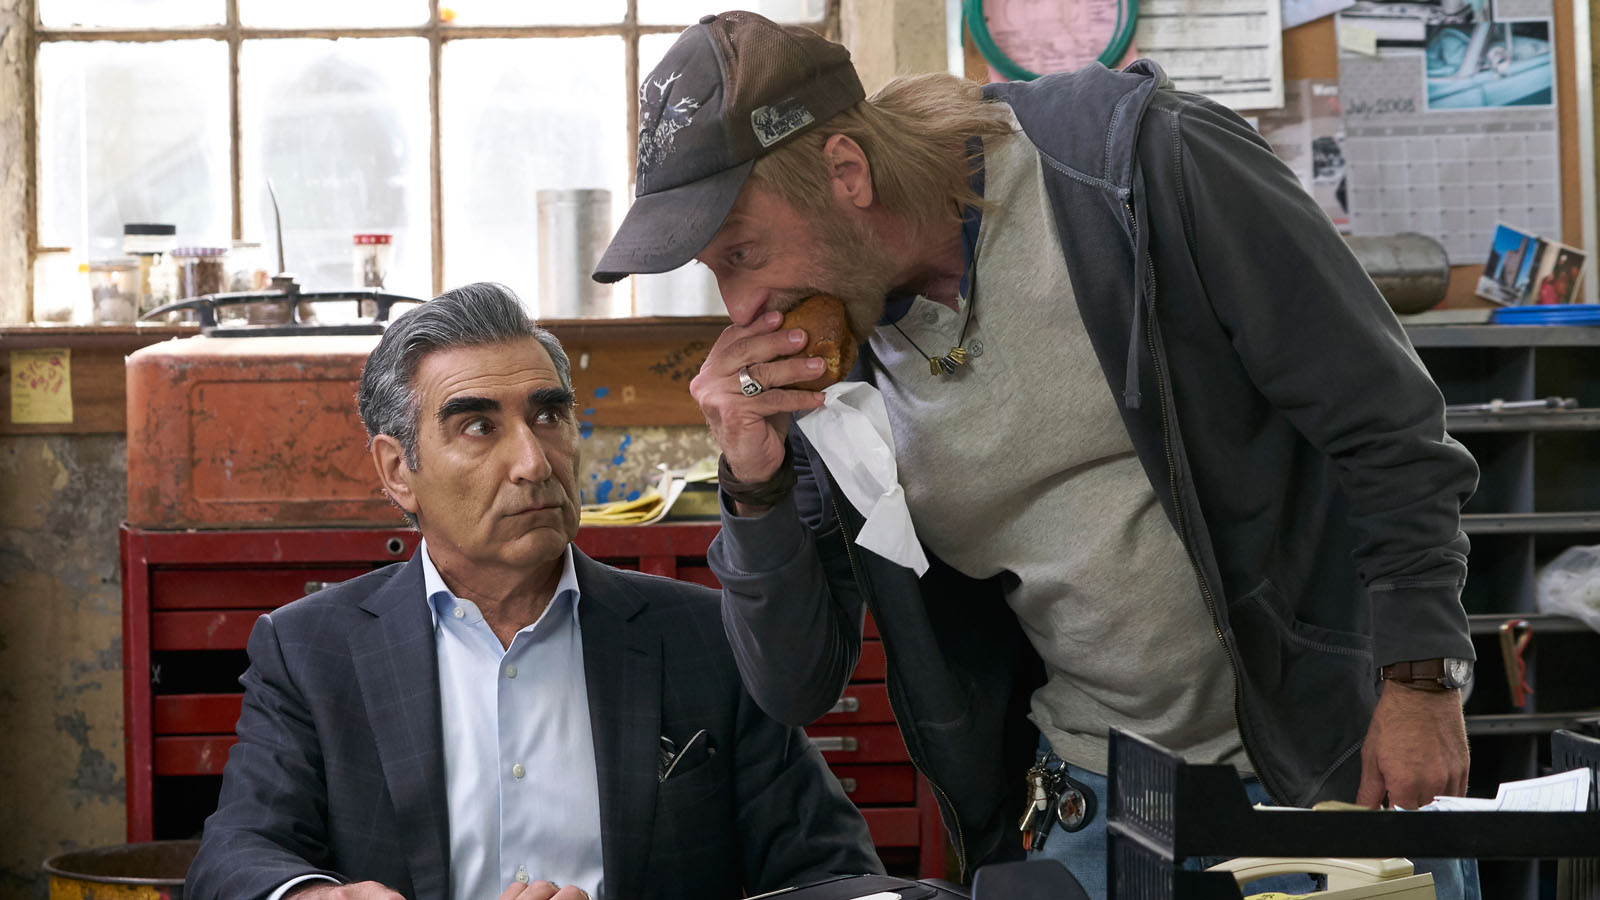 Bob's Bagels | Schitt's Creek Wiki | FANDOM powered by Wikia